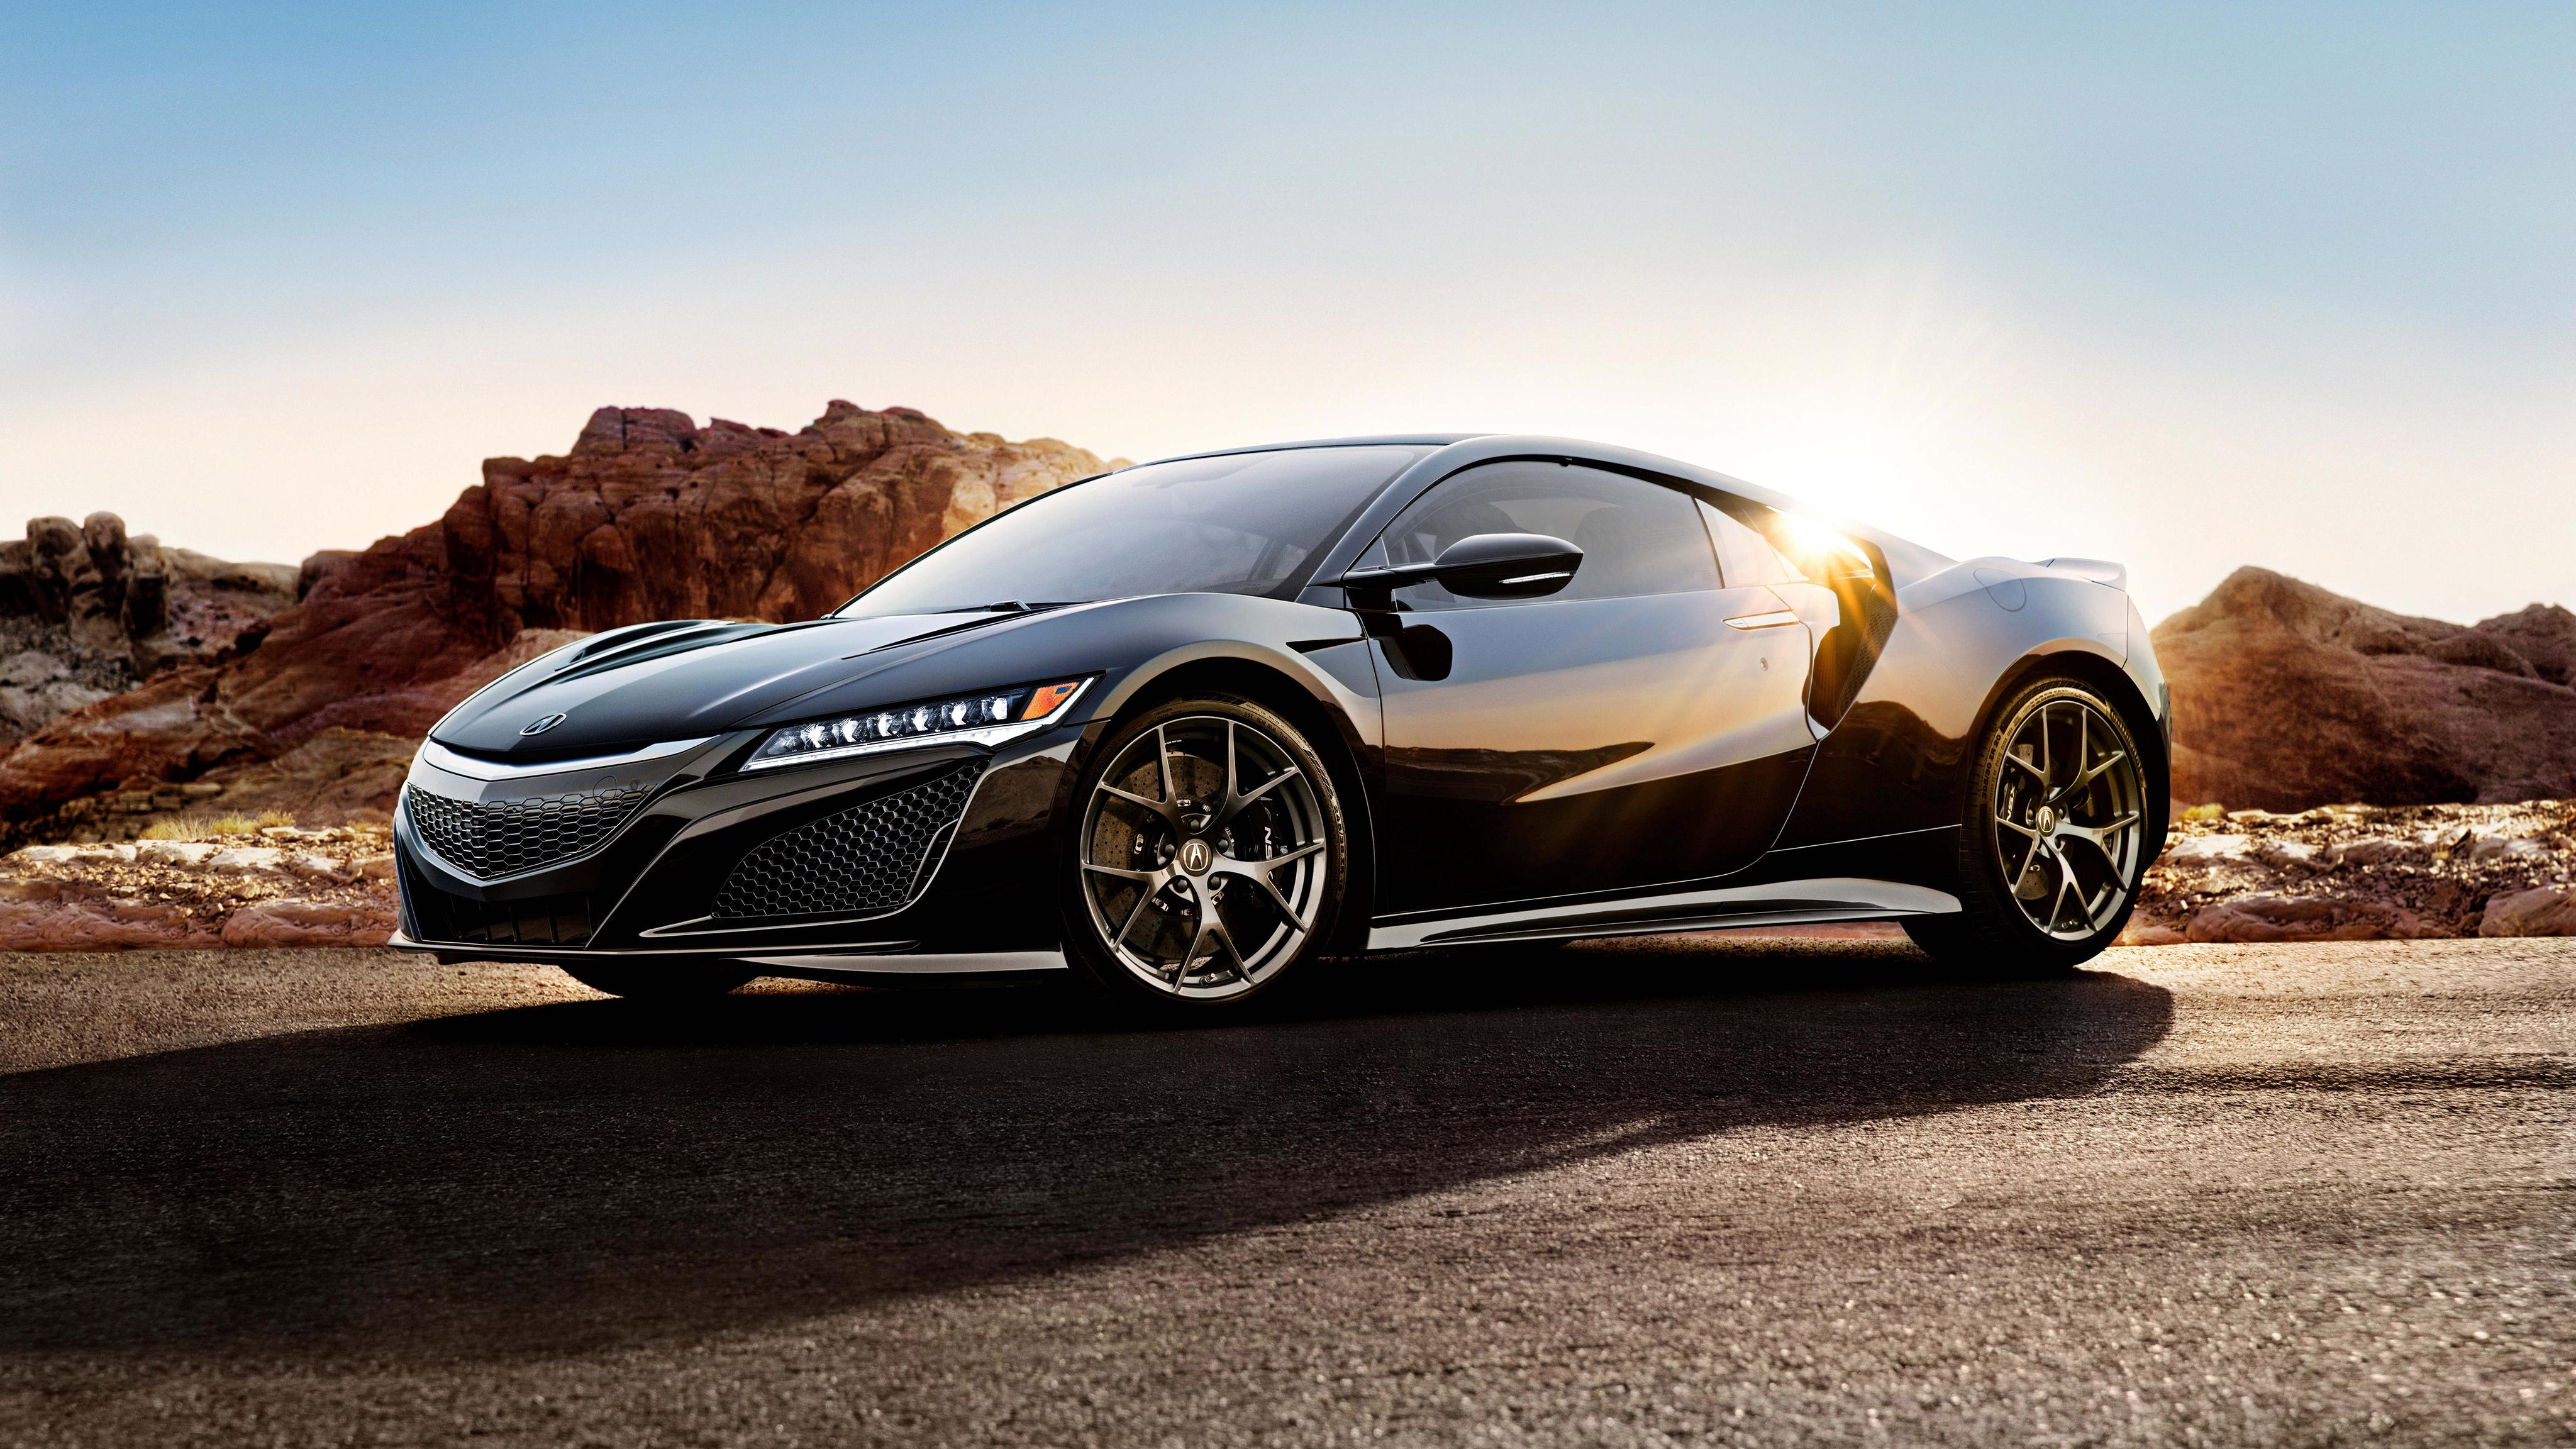 Acura Nsx Car Wallpapers Wallpaper Cave